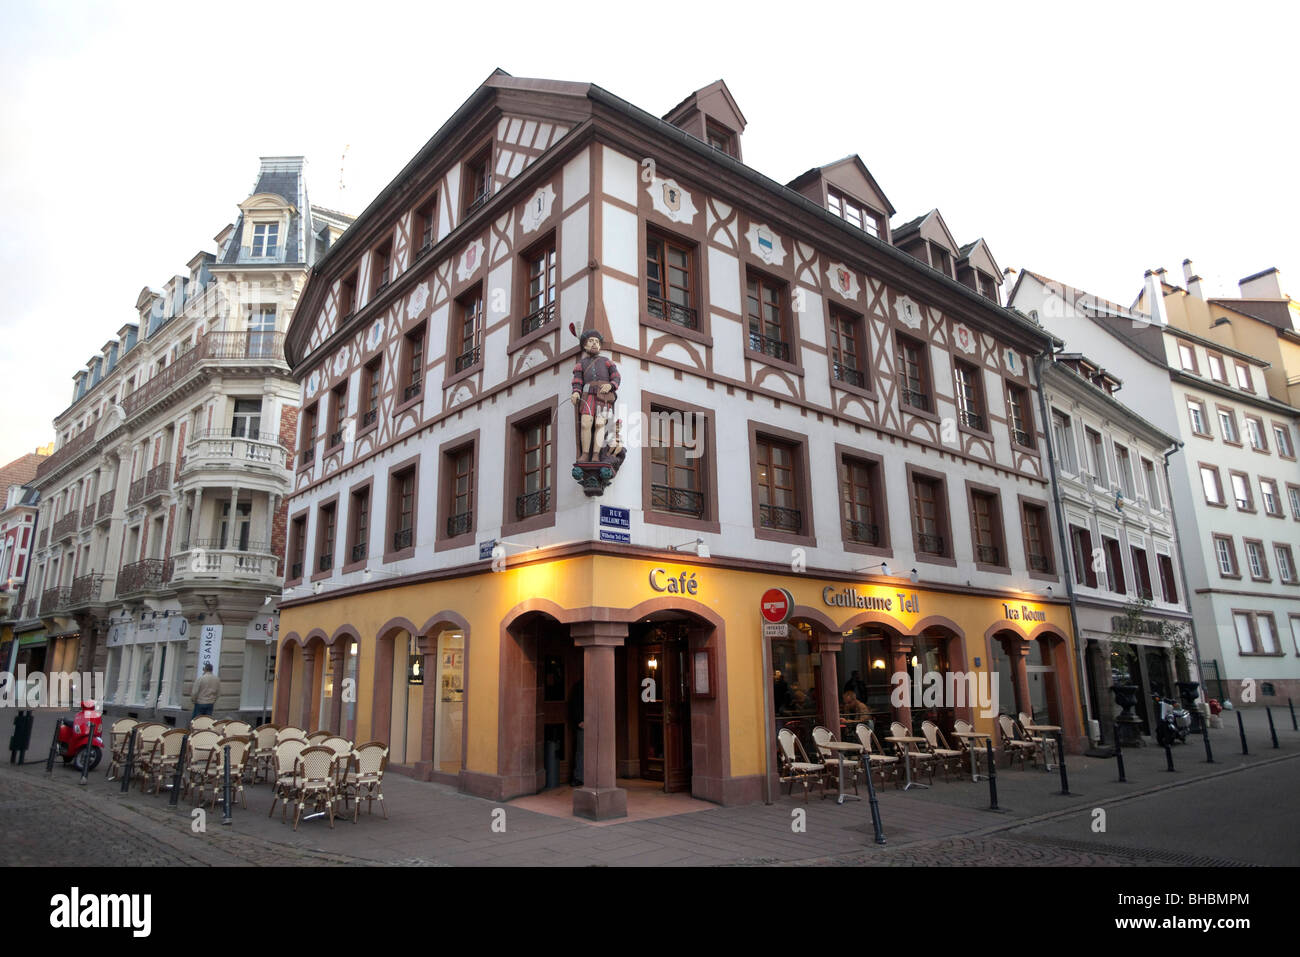 cafe restaurant rue guillaume wilhelm tell with statue mulhouse stock photo royalty free. Black Bedroom Furniture Sets. Home Design Ideas